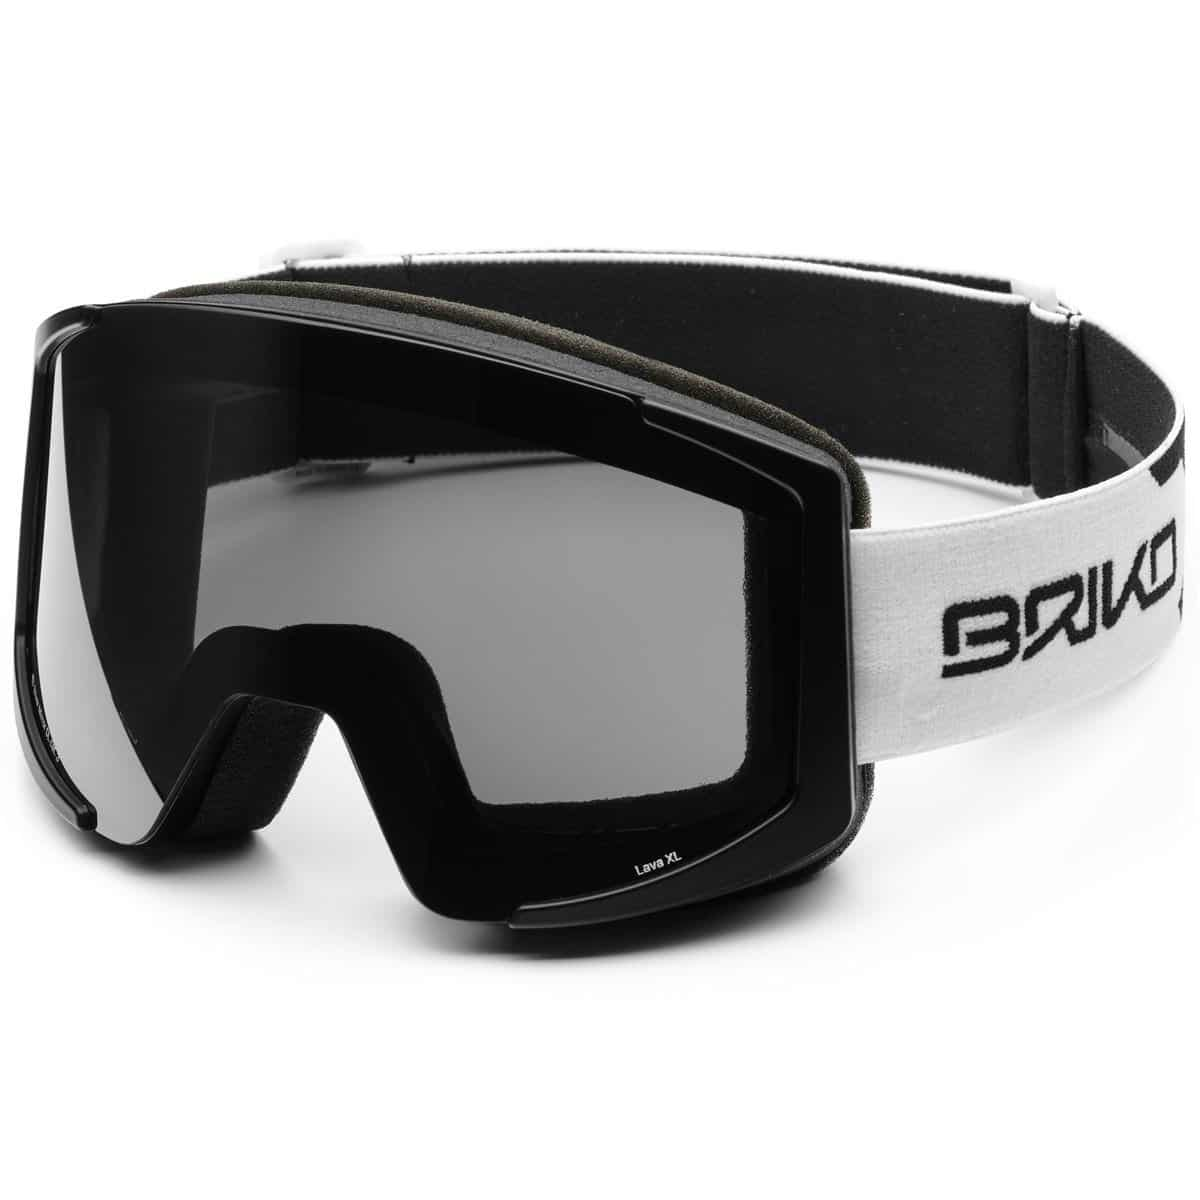 8eec2e2f7 Briko LAVA XL Goggles - 2 lenses - World Cup Ski Shop